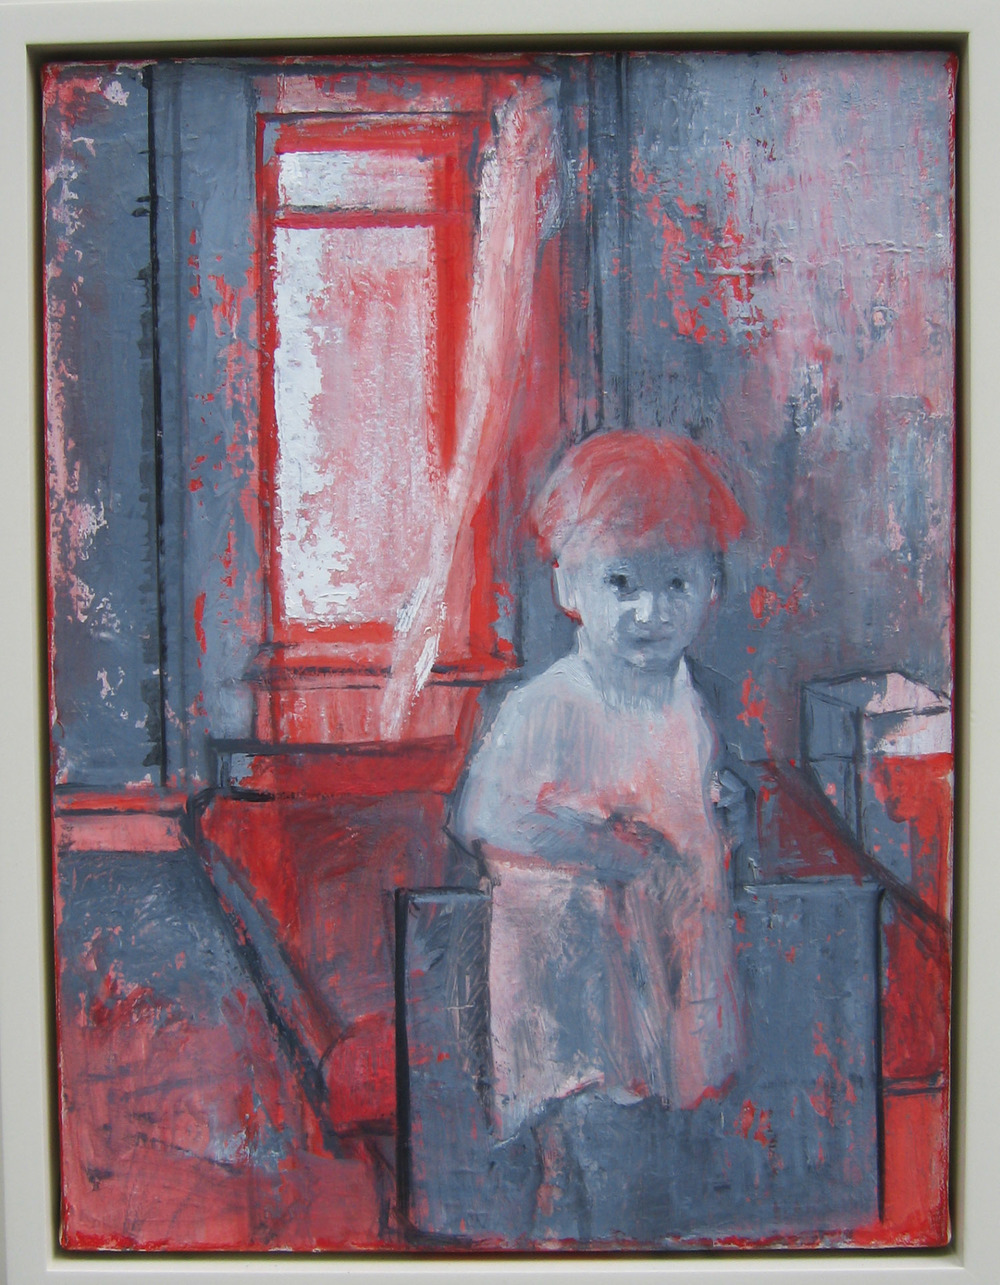 5bf(0)- Hesitation, oil, wax on canvas, wood, 23x19 in. 2005.jpg